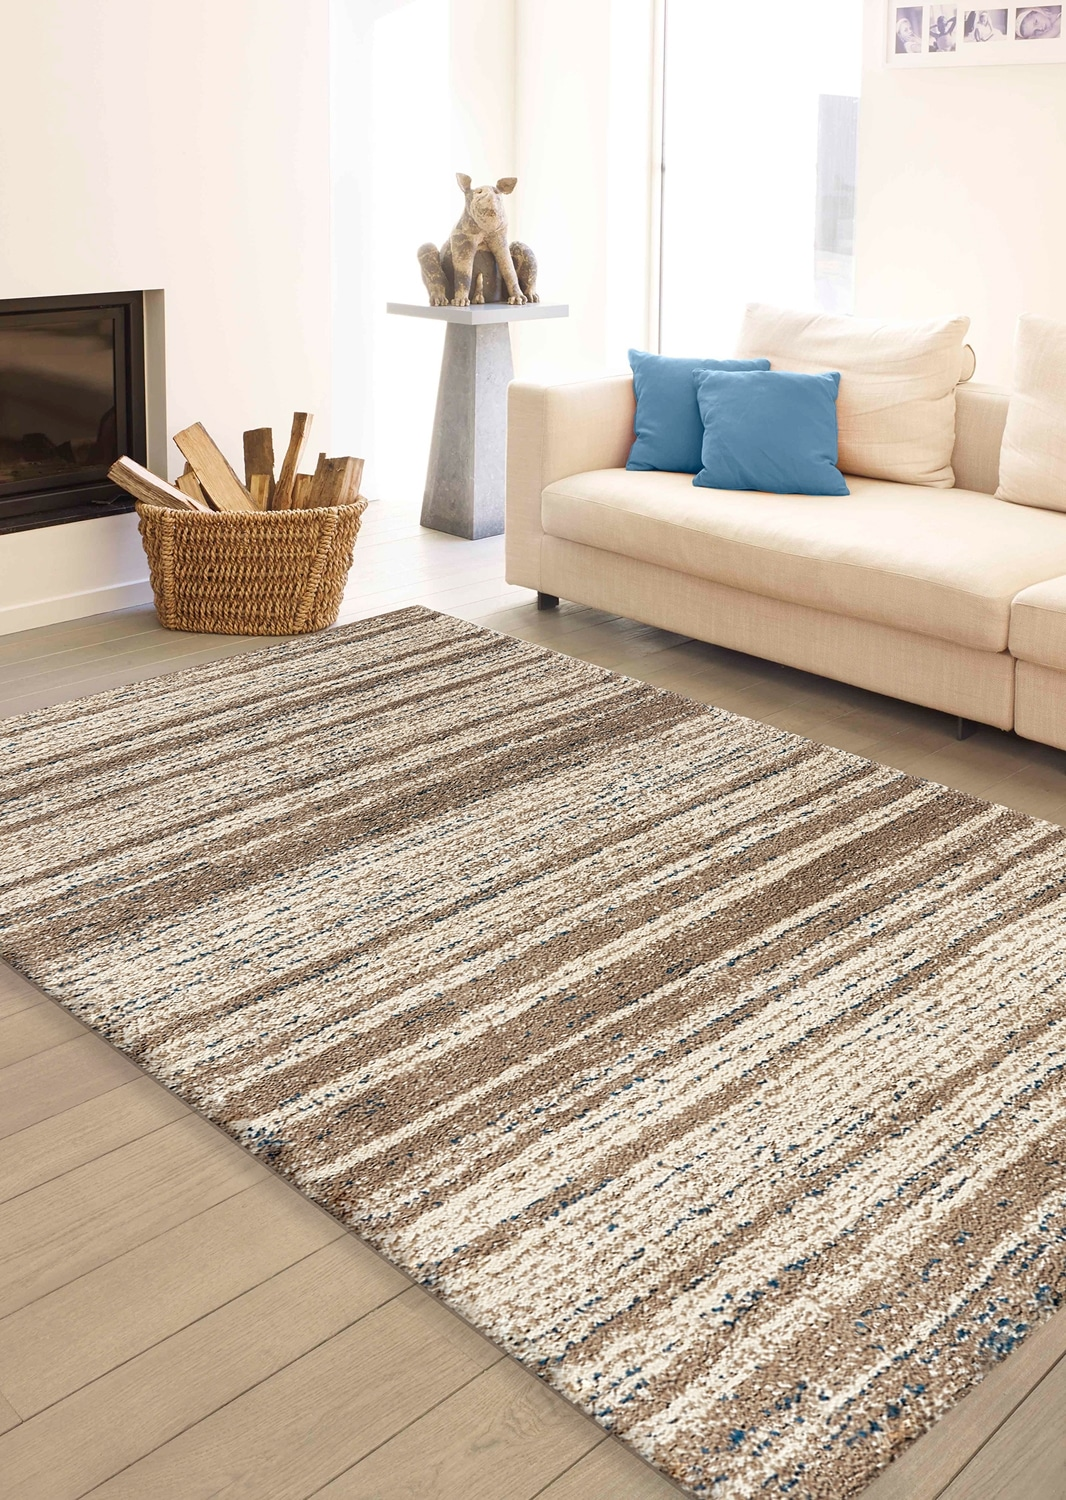 Maroq Tribal Area Rug – 5' x 8'